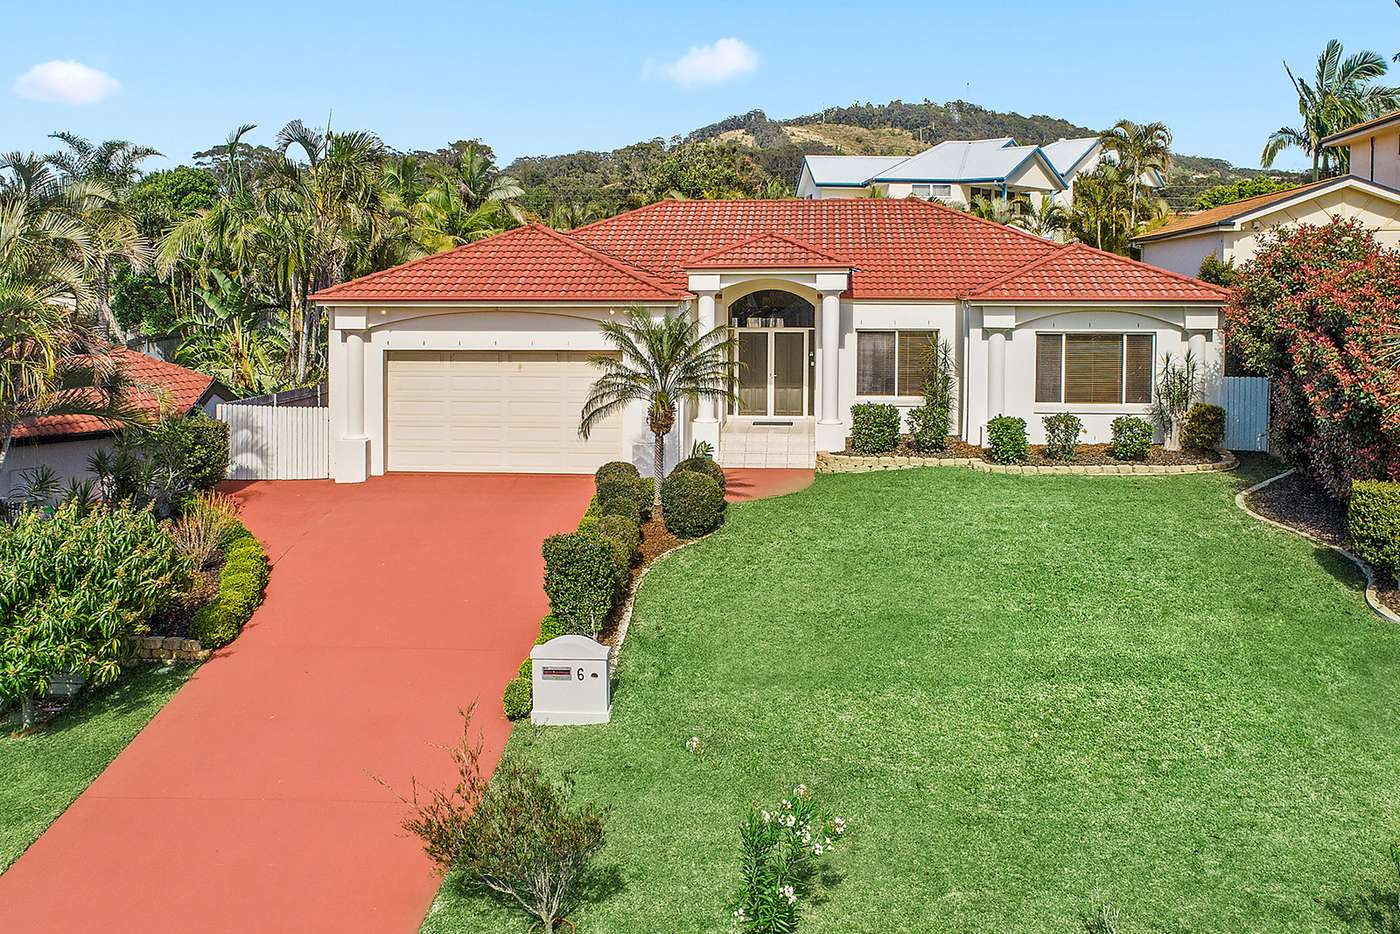 Main view of Homely house listing, 6 Bluewater Place, Sapphire Beach NSW 2450